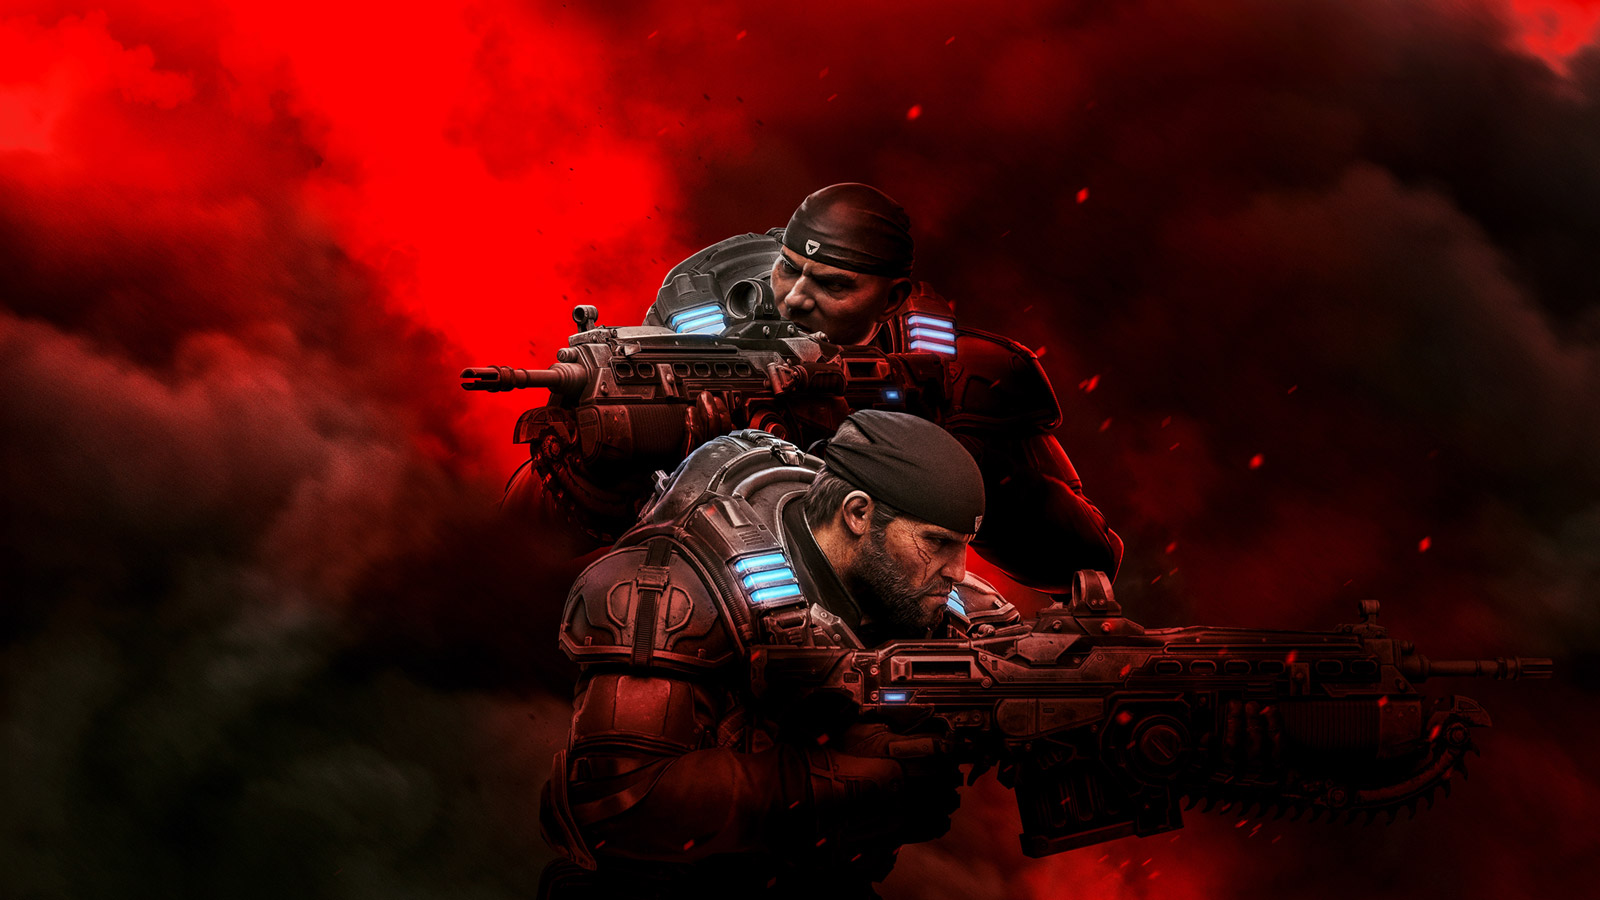 Gears 5 Wallpaper in 1600x900